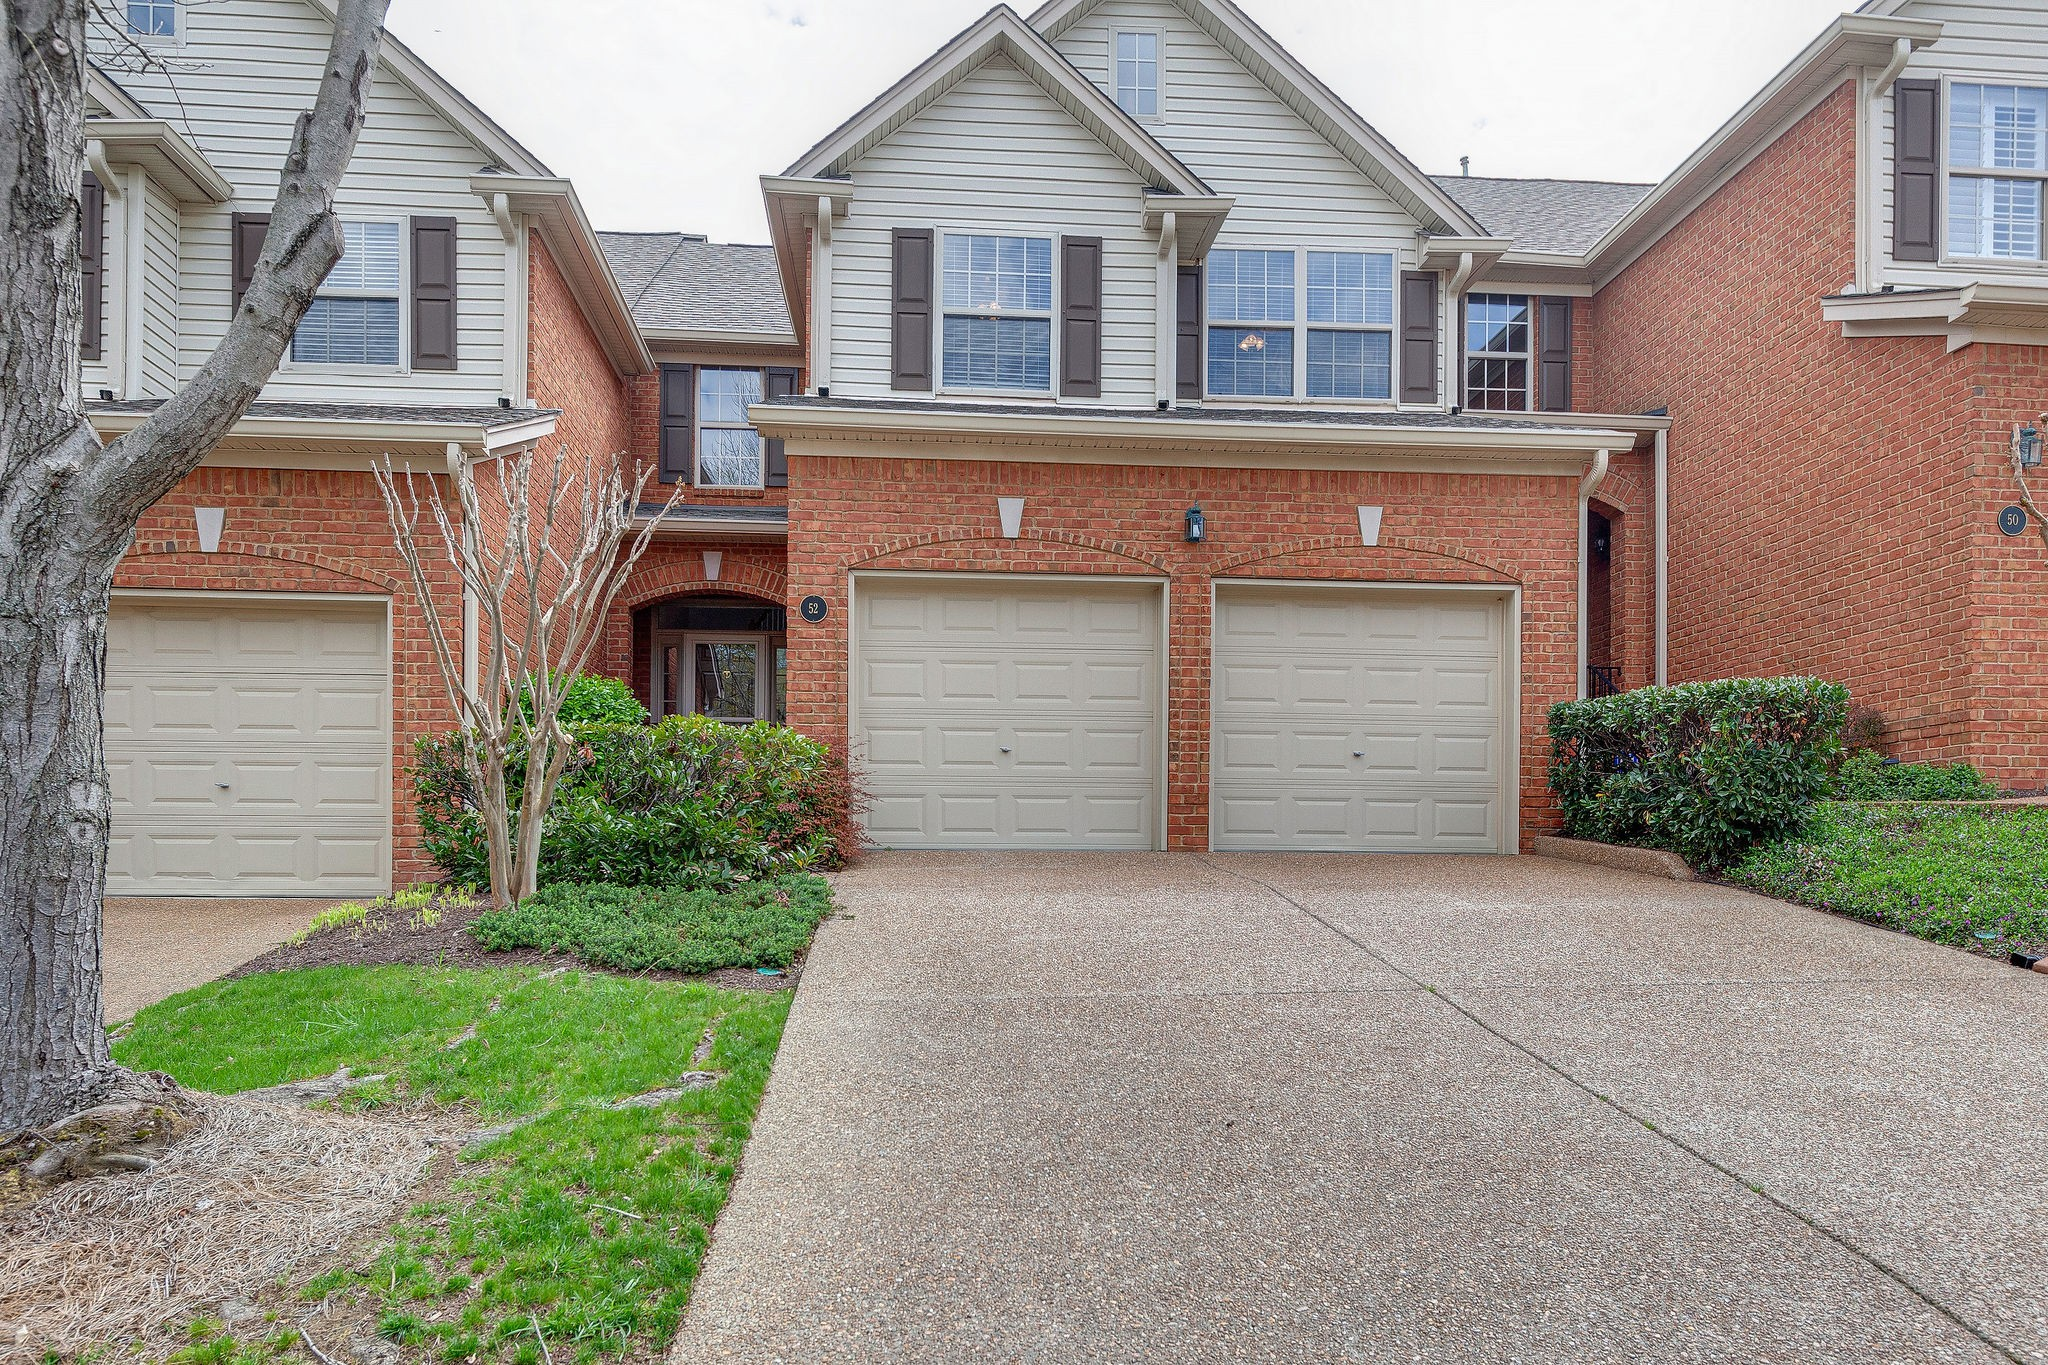 Yummy: Immaculate, Neutral, VACANT, Move-In Condition. Close to I-65, downtown, Brentwood and Cool springs. Priced to sell. Great opportunity for this location and price range